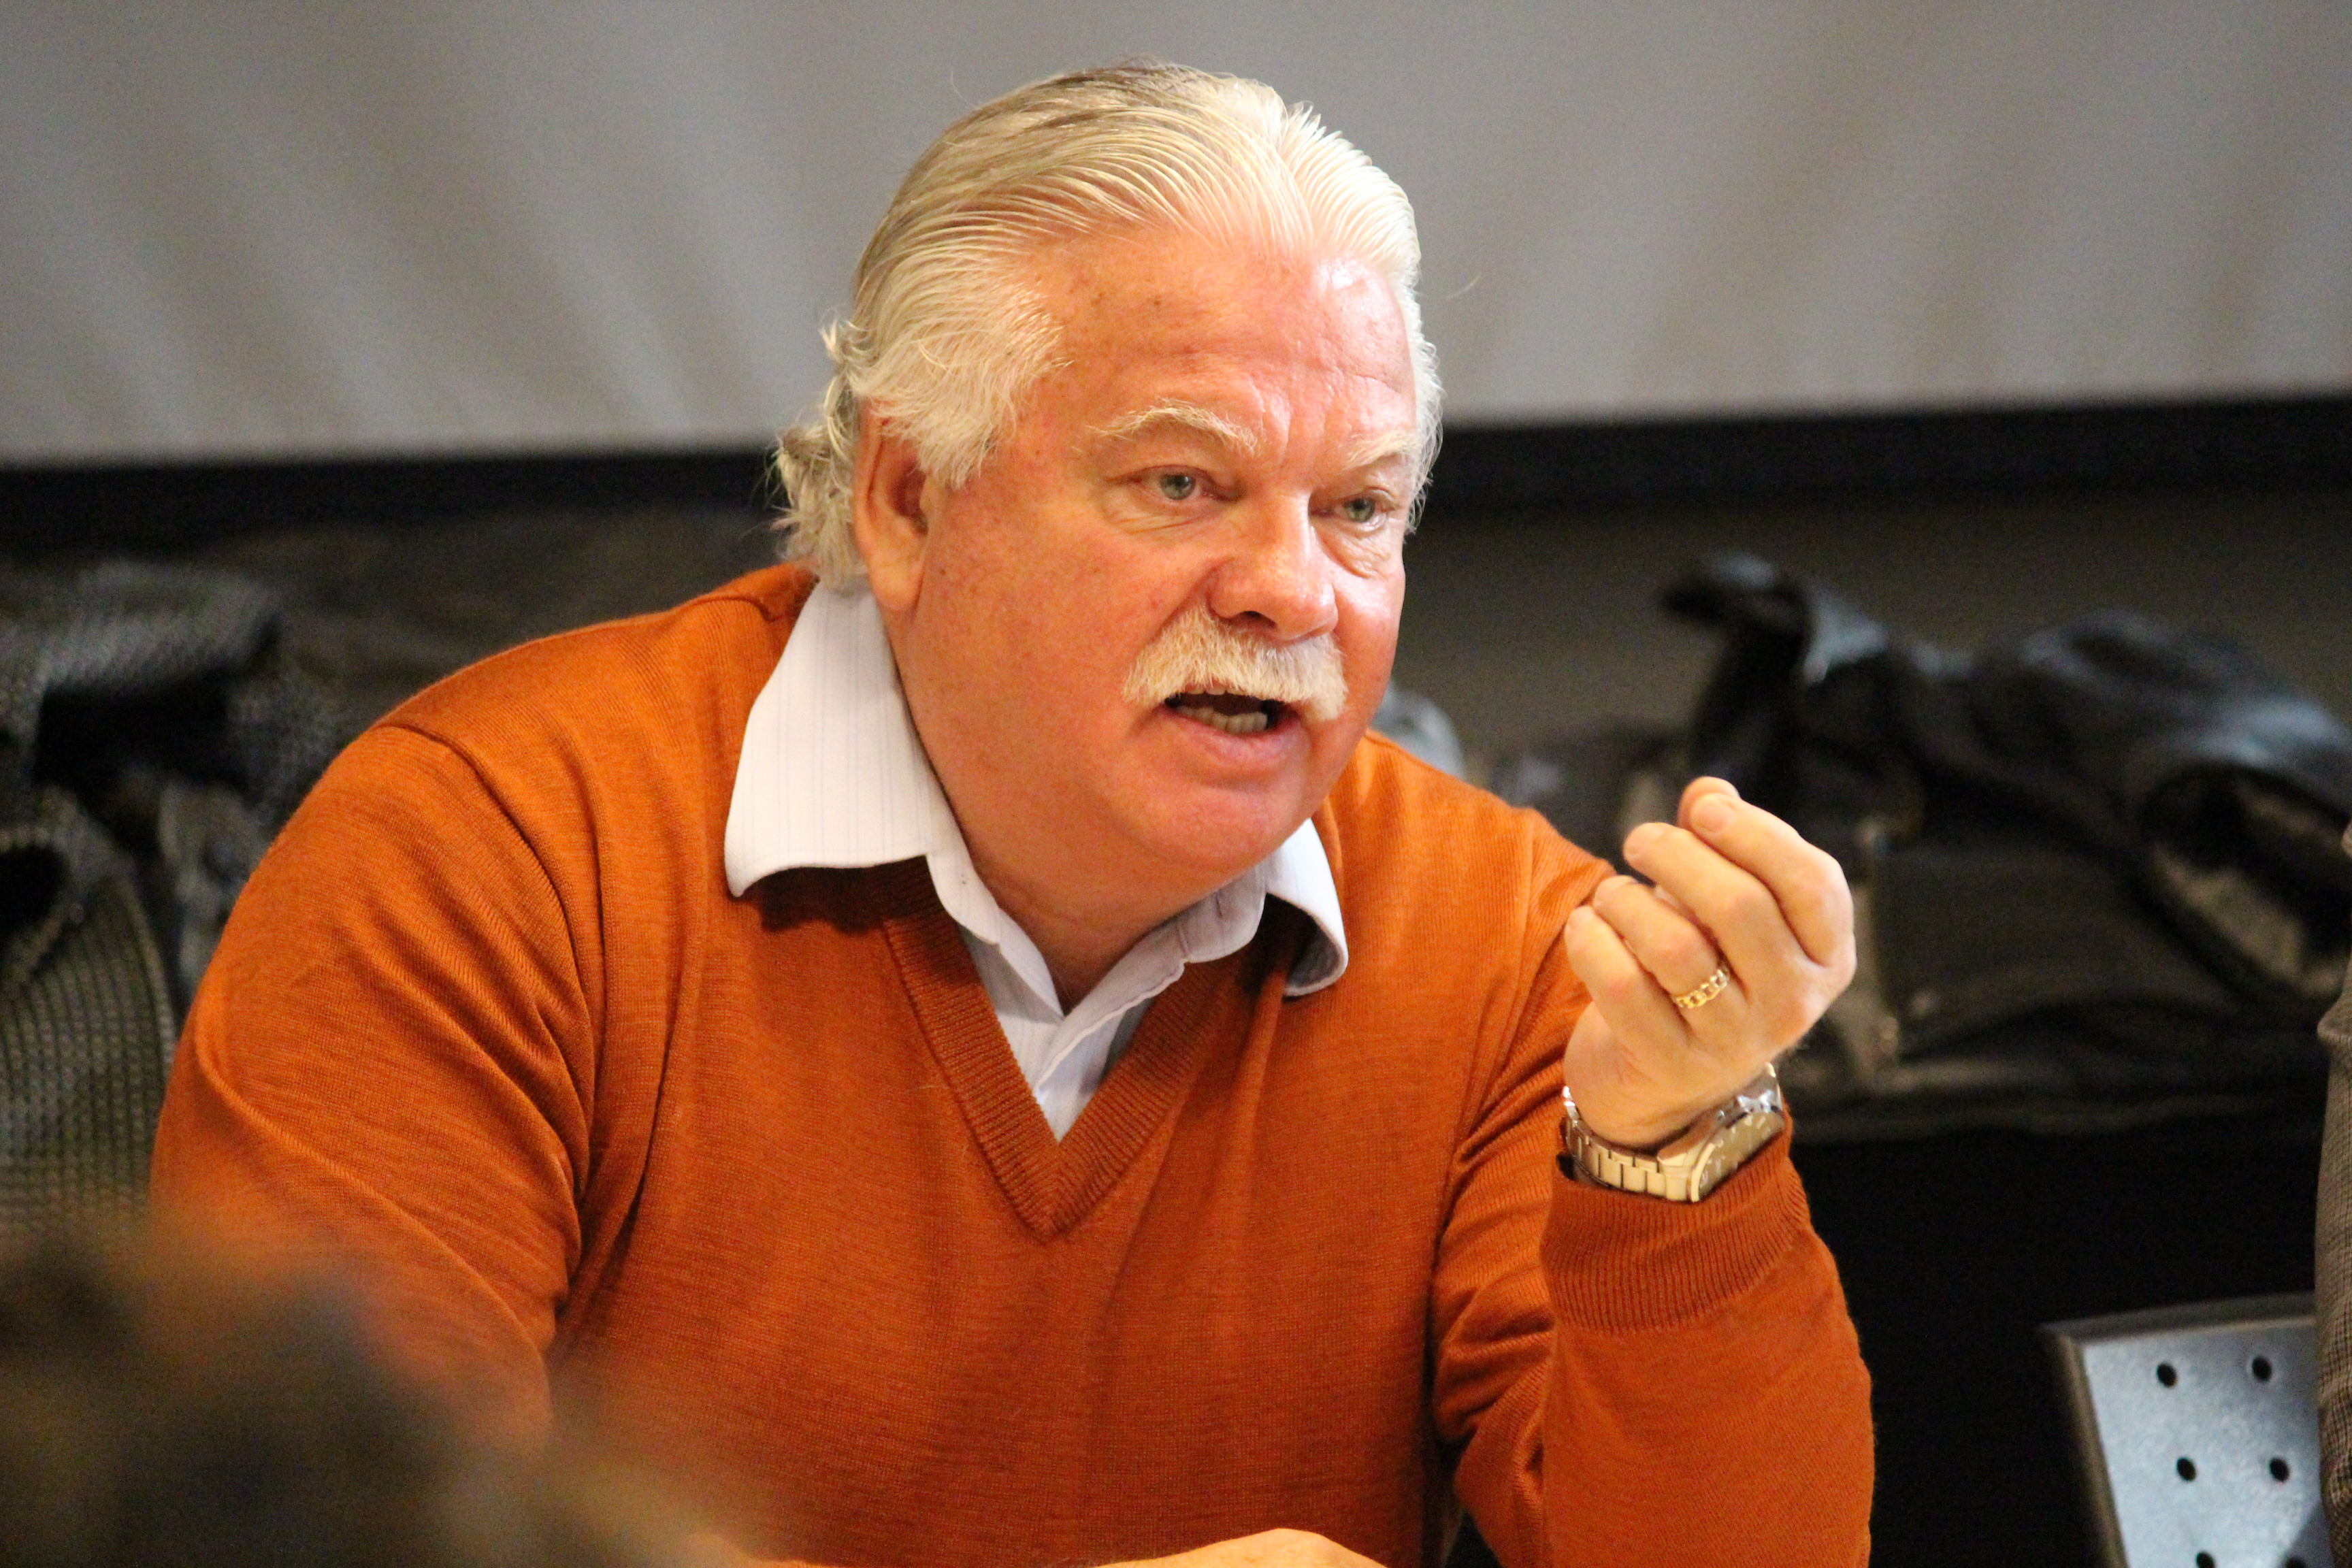 Windsor-Tecumseh NDP MPP Percy Hatfield expresses concern over cuts to the CCAC. (Photo by Jason Viau)